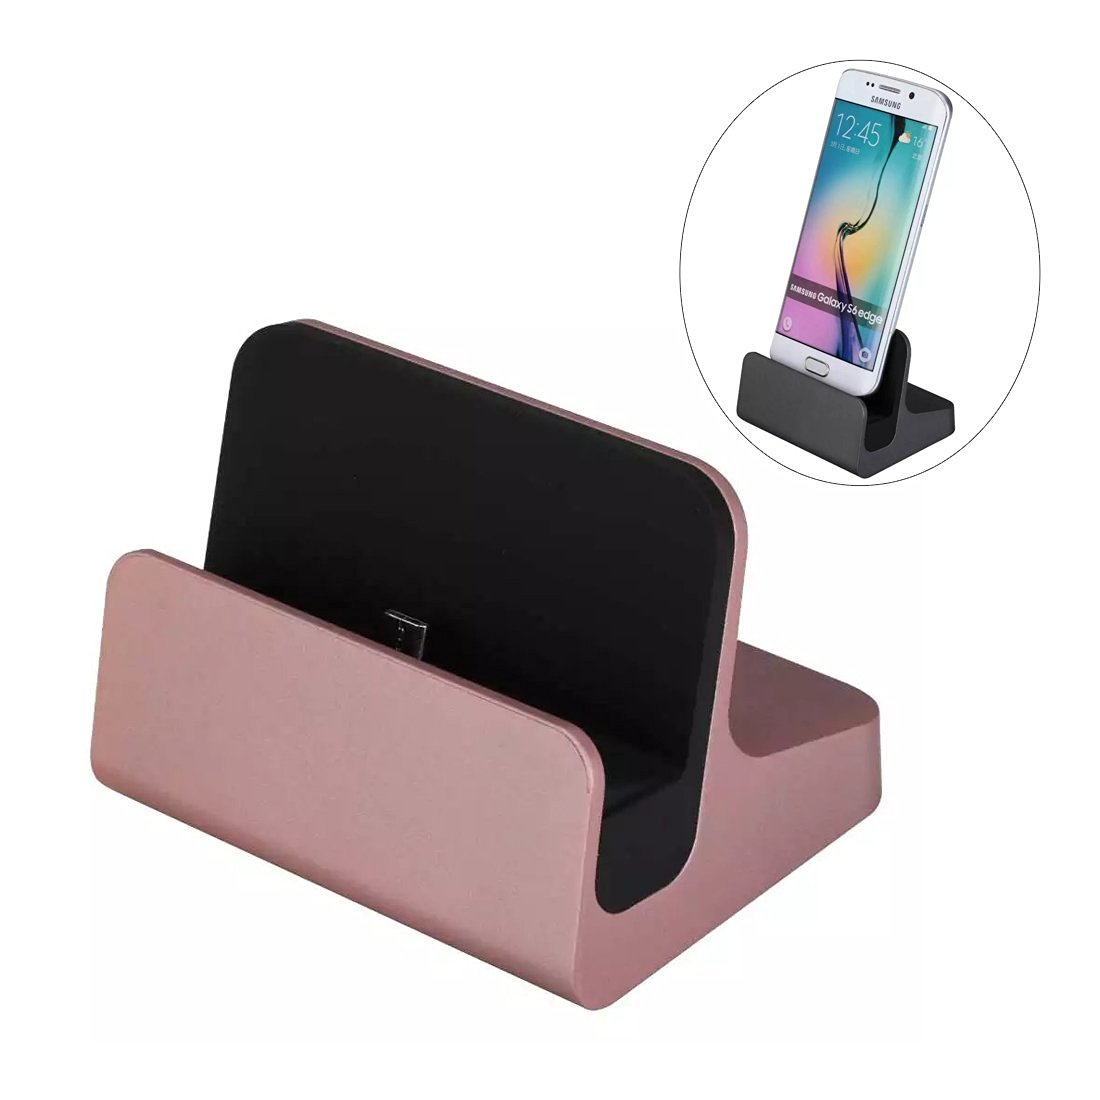 Micro USB Charge Dock Cradle - Riipoo Micro USB Charging and Data Sync Transferring Dock, Cradle for Samsung, Sony and Other Android Smart phones, Tablets (Rose Gold)